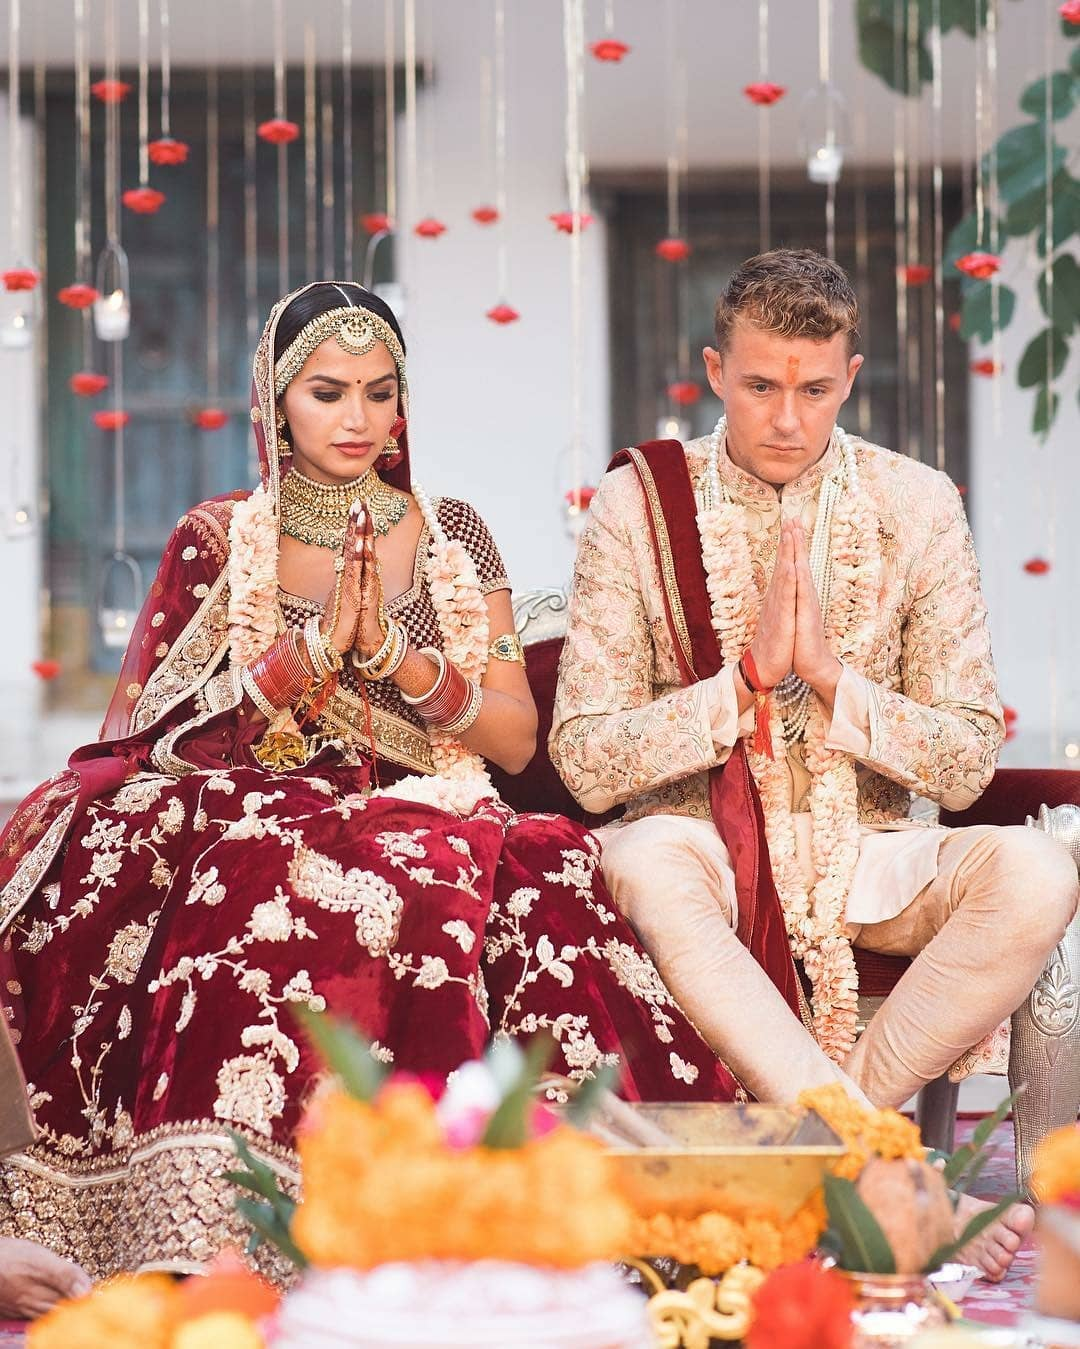 Rich wine and ivory combination: Bride and Groom Wedding Dress Colour Combinations